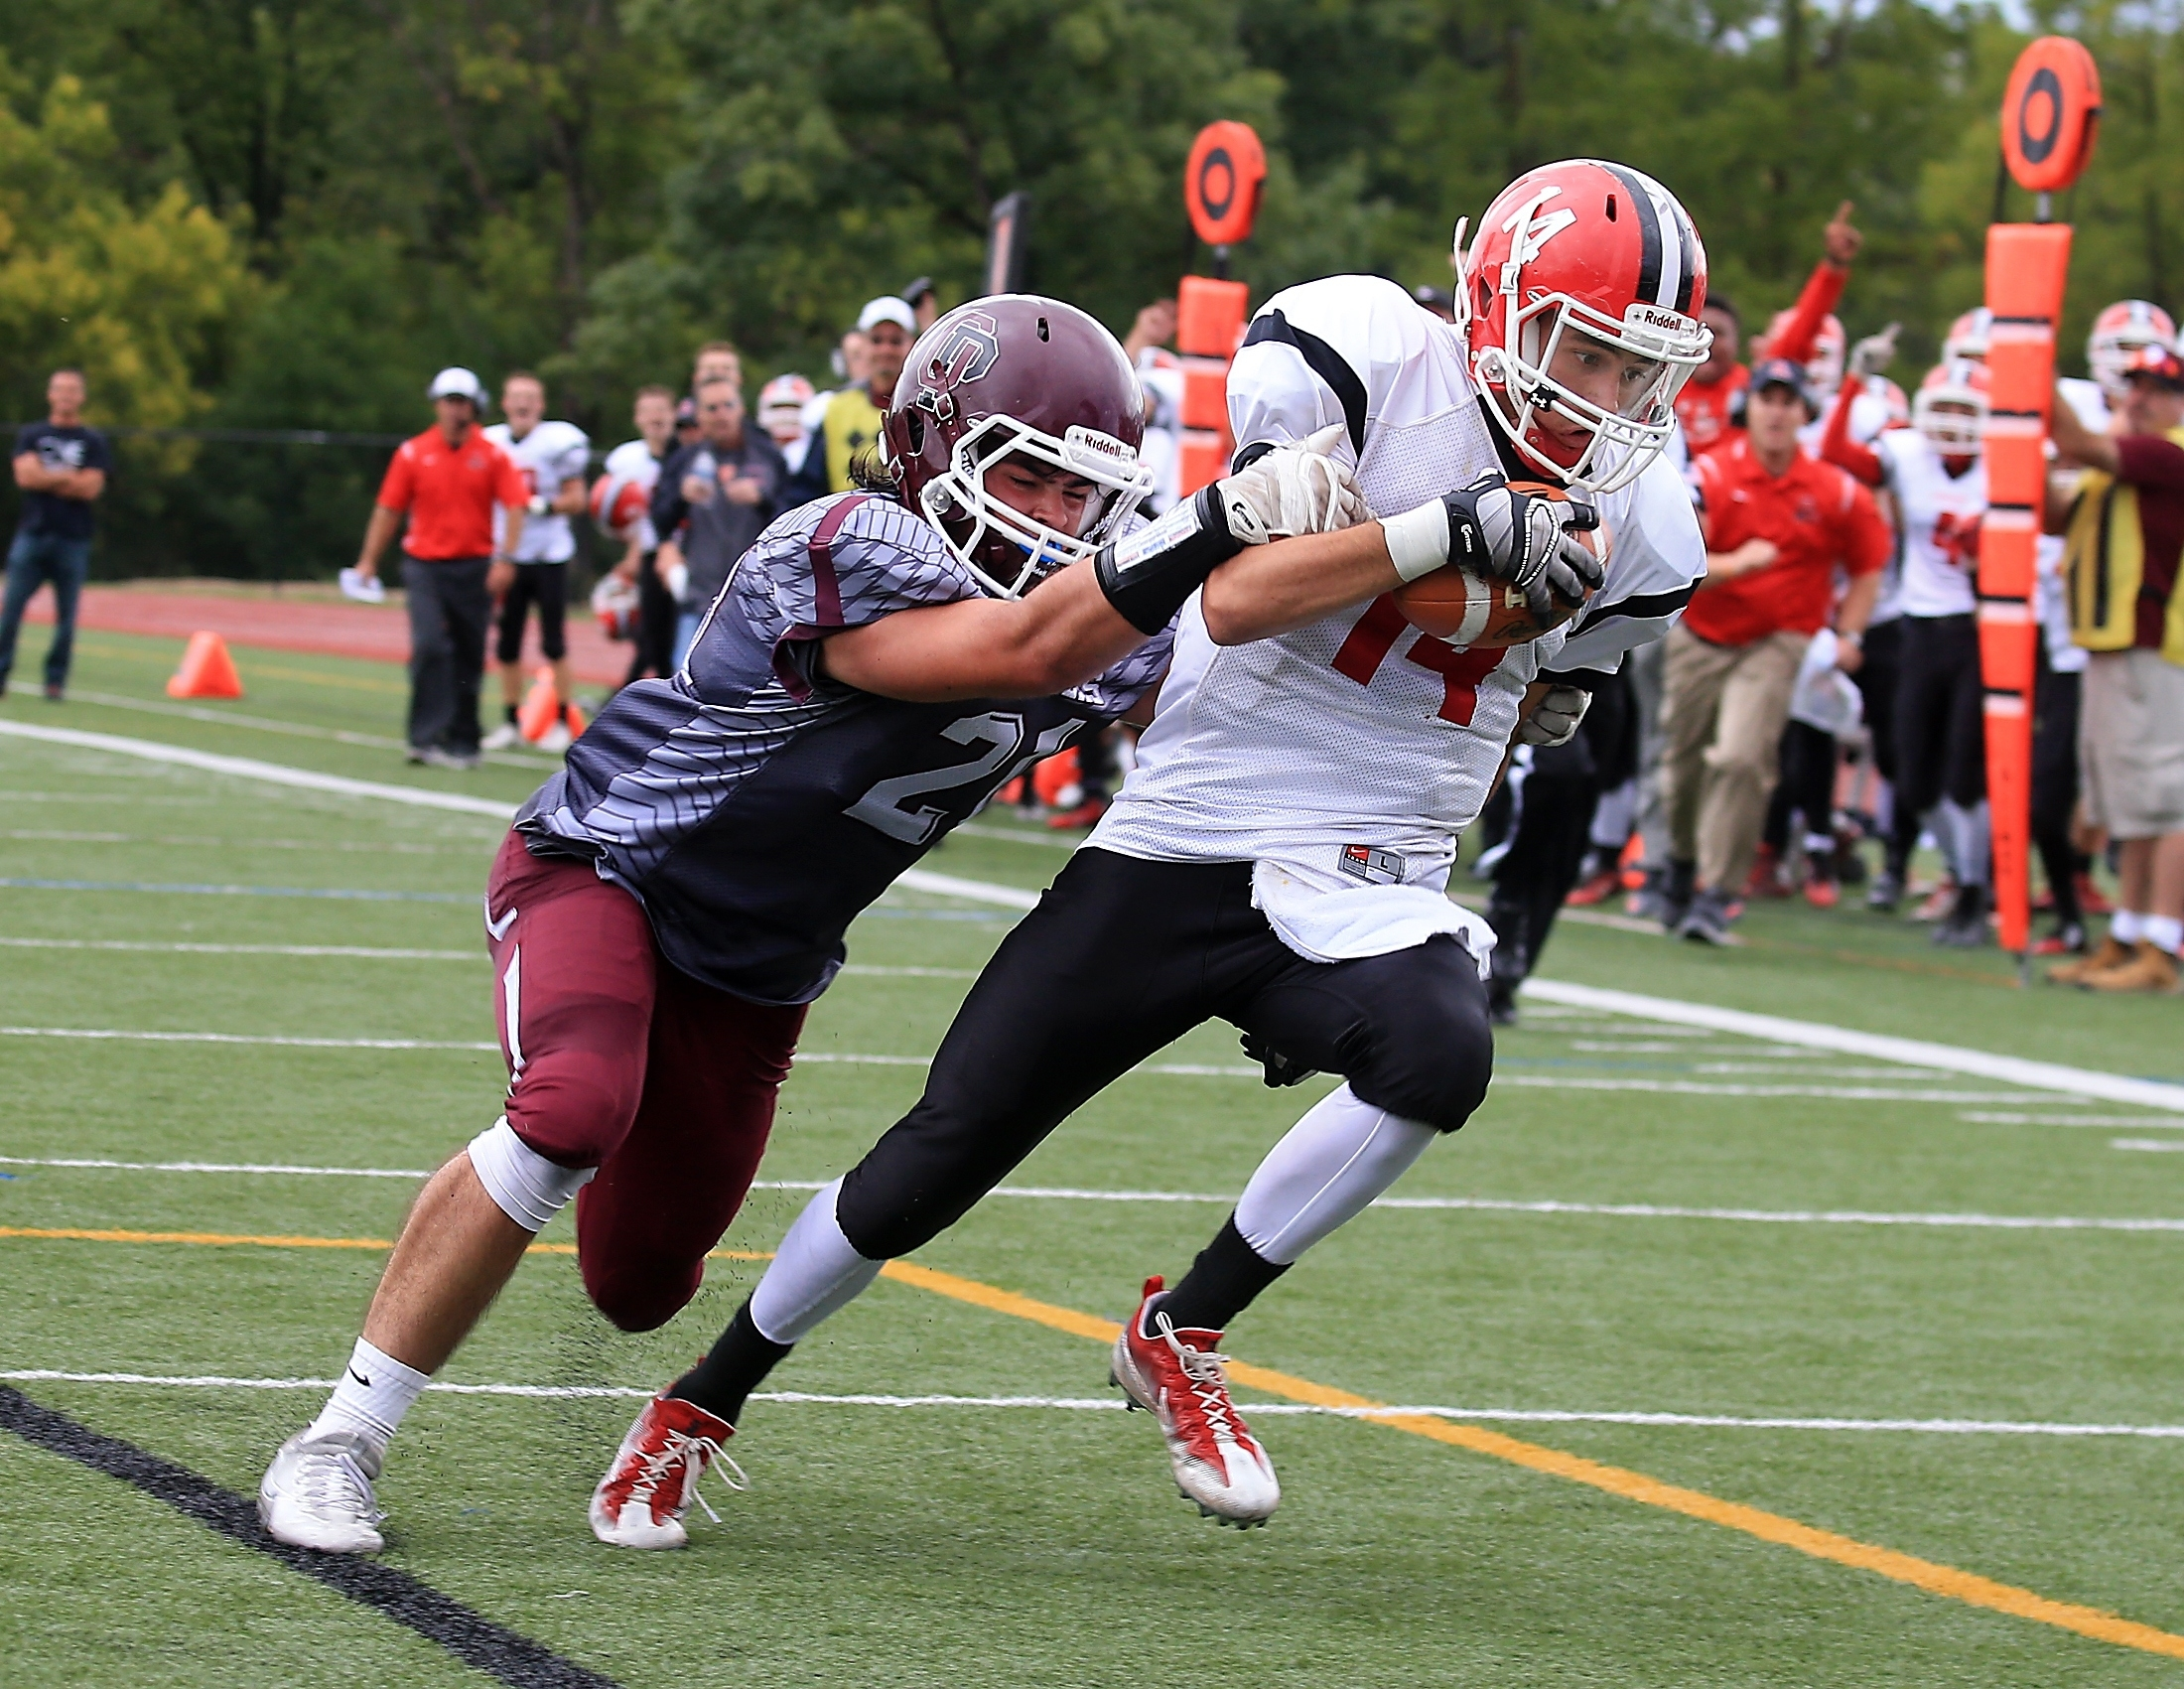 Orchard Park's Ethan Wood (21) can't keep Lancaster's Max Giordano (14) from scoring in Saturday's Legends victory.